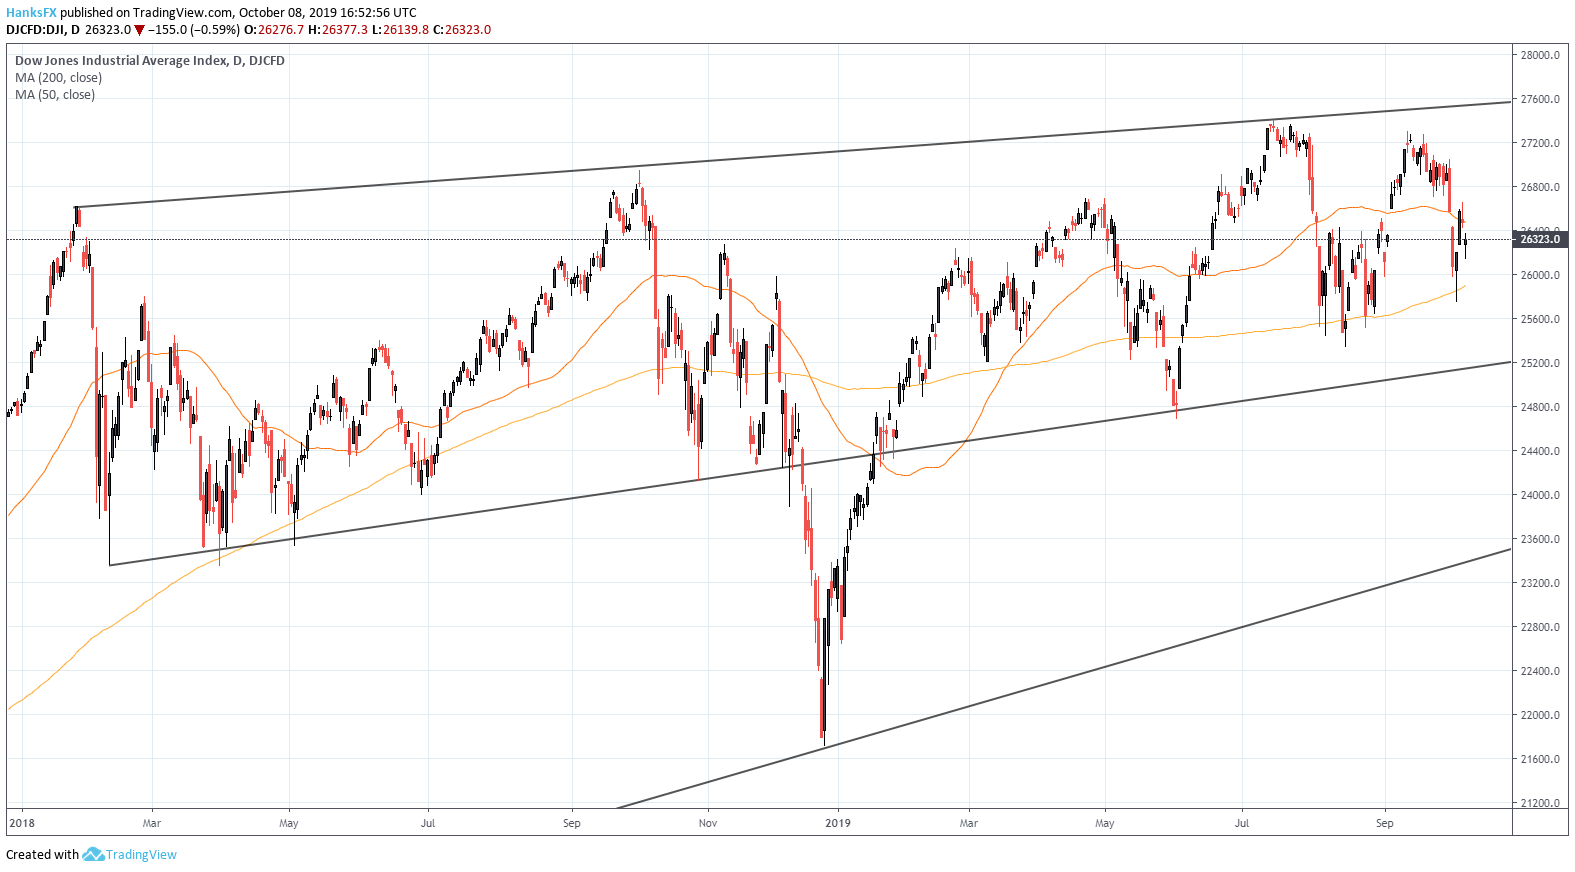 Dax index meaning